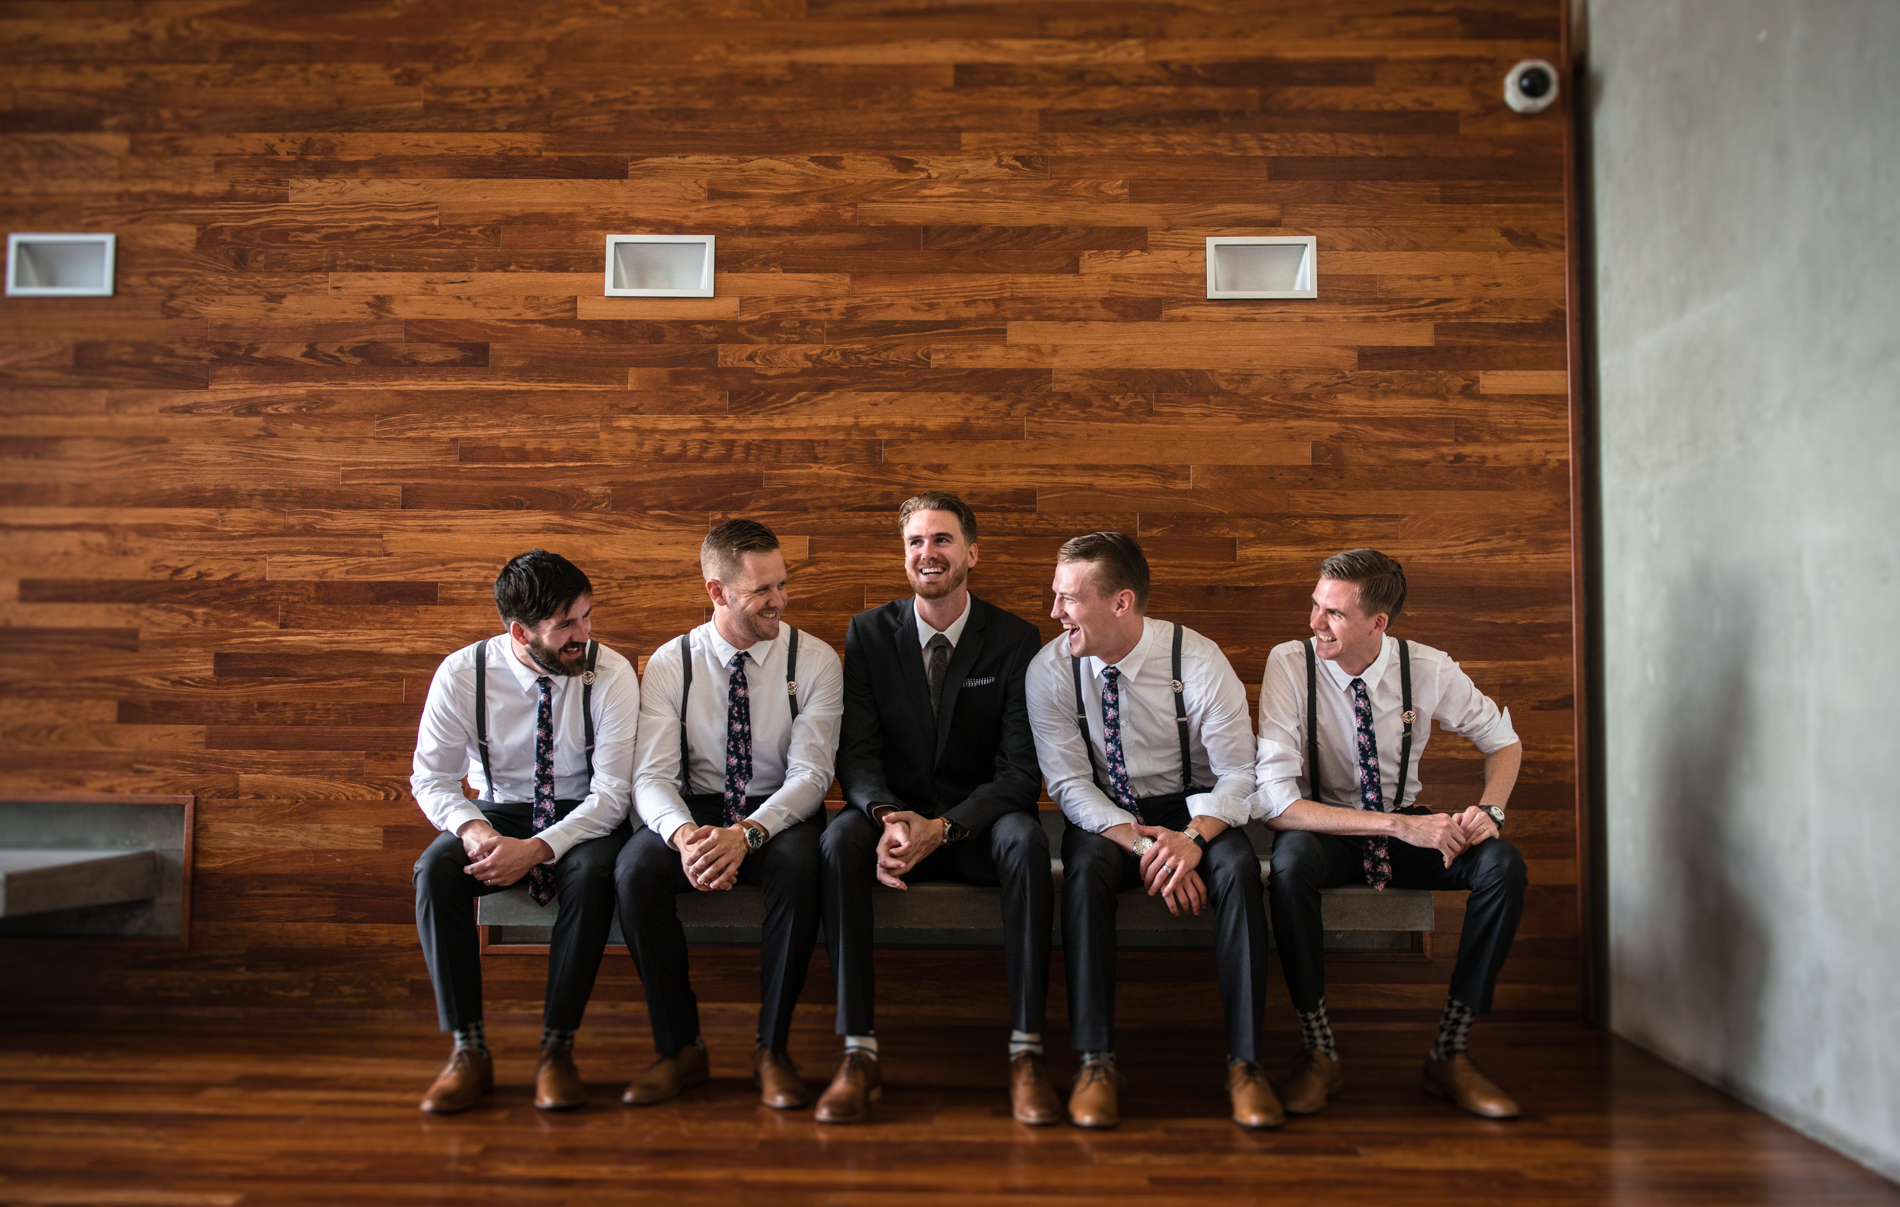 vancouver-wedding-photographer-groomsmen_001